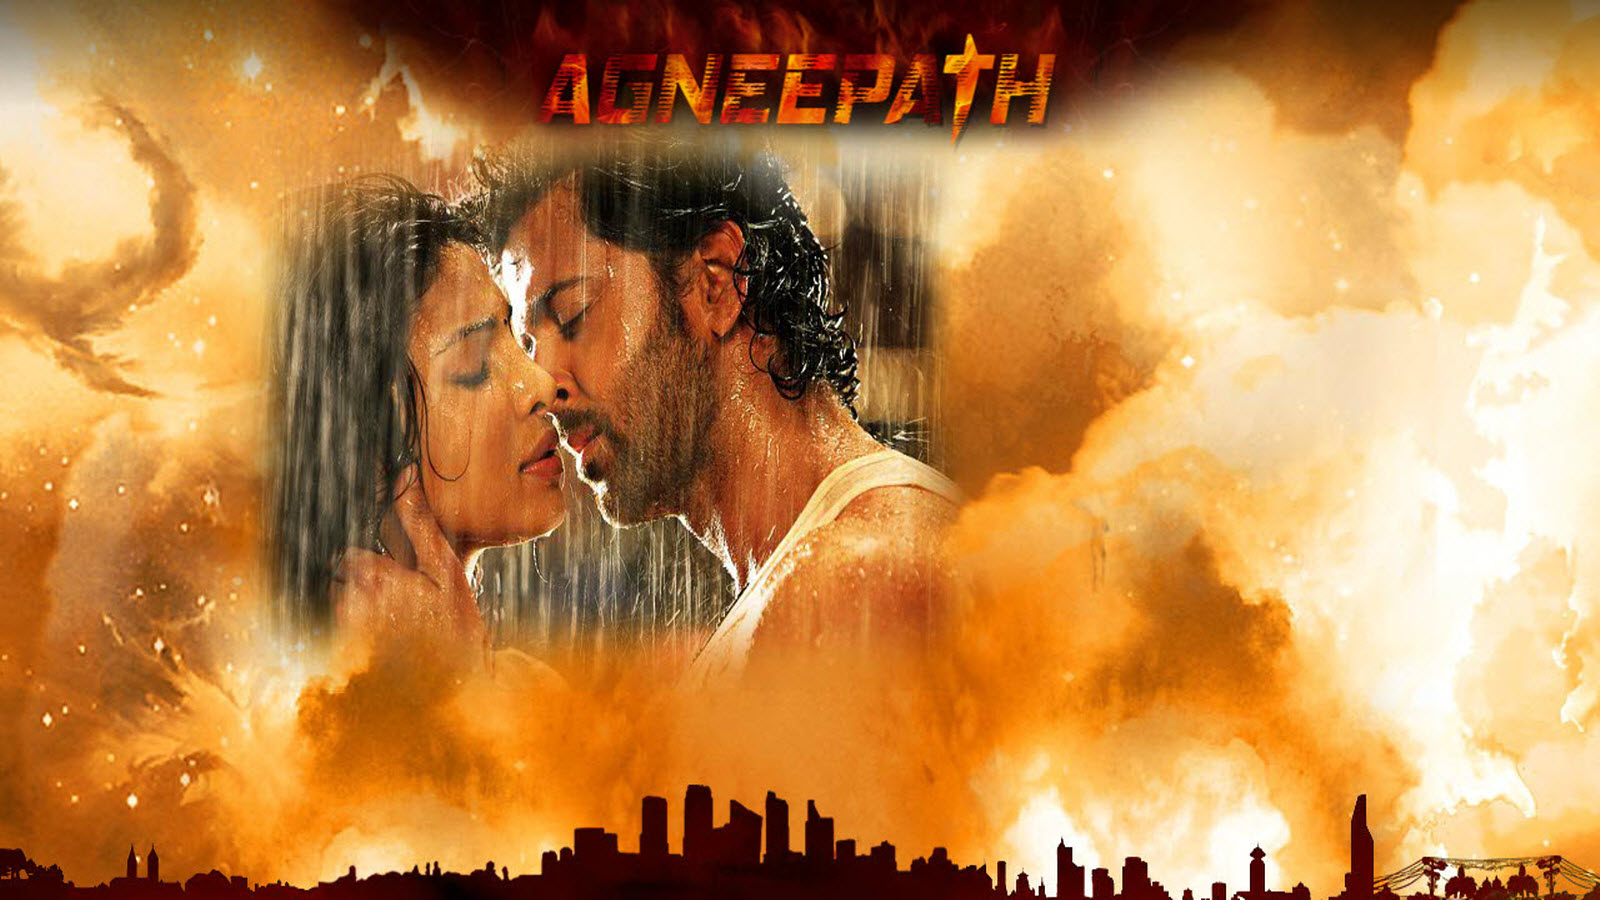 Watch Agneepath (2012) Movie Online Streaming watch free